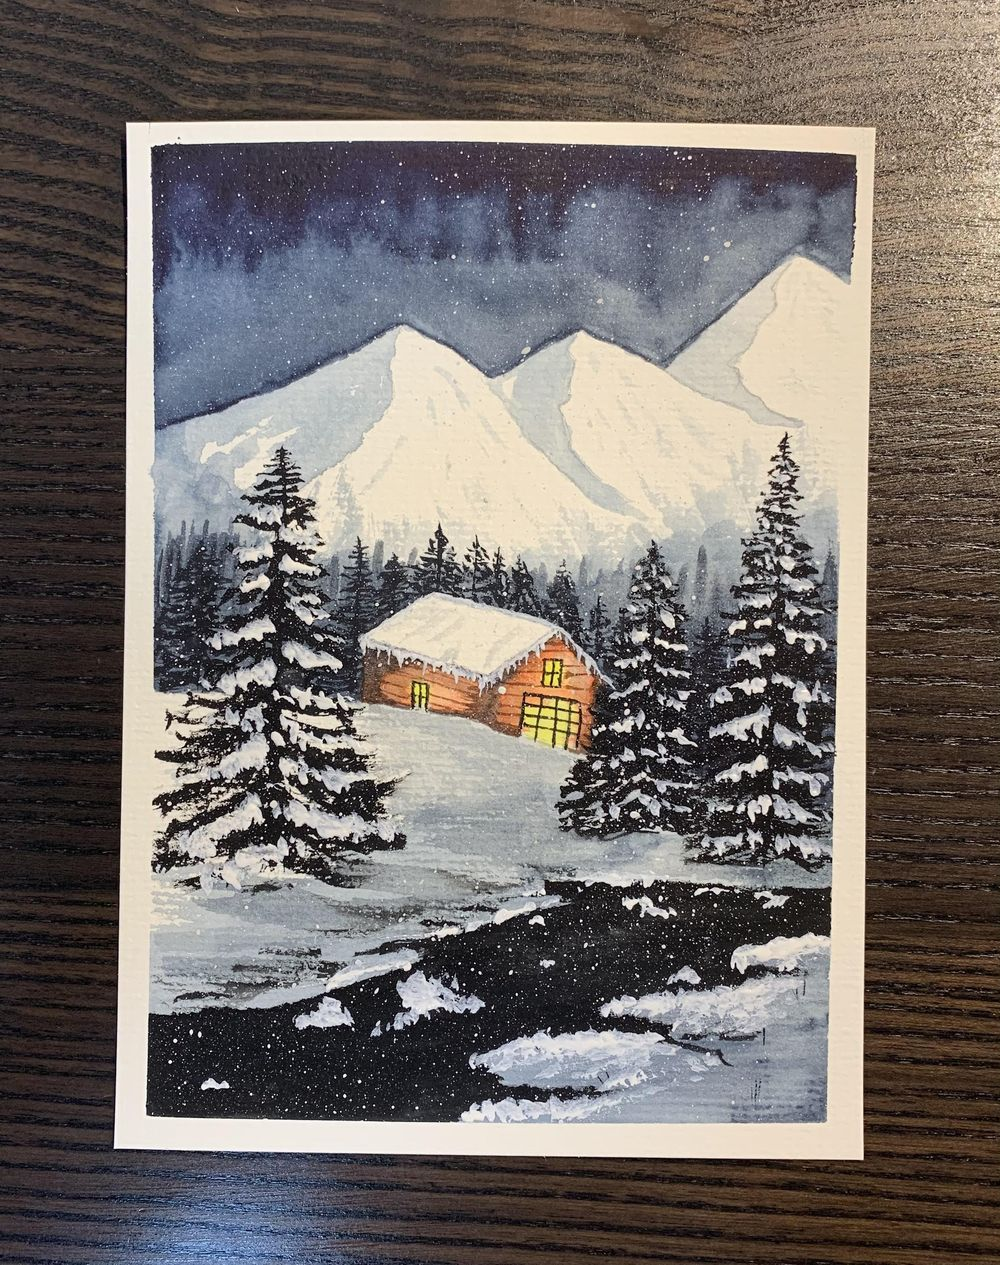 Snowy mountain - image 1 - student project